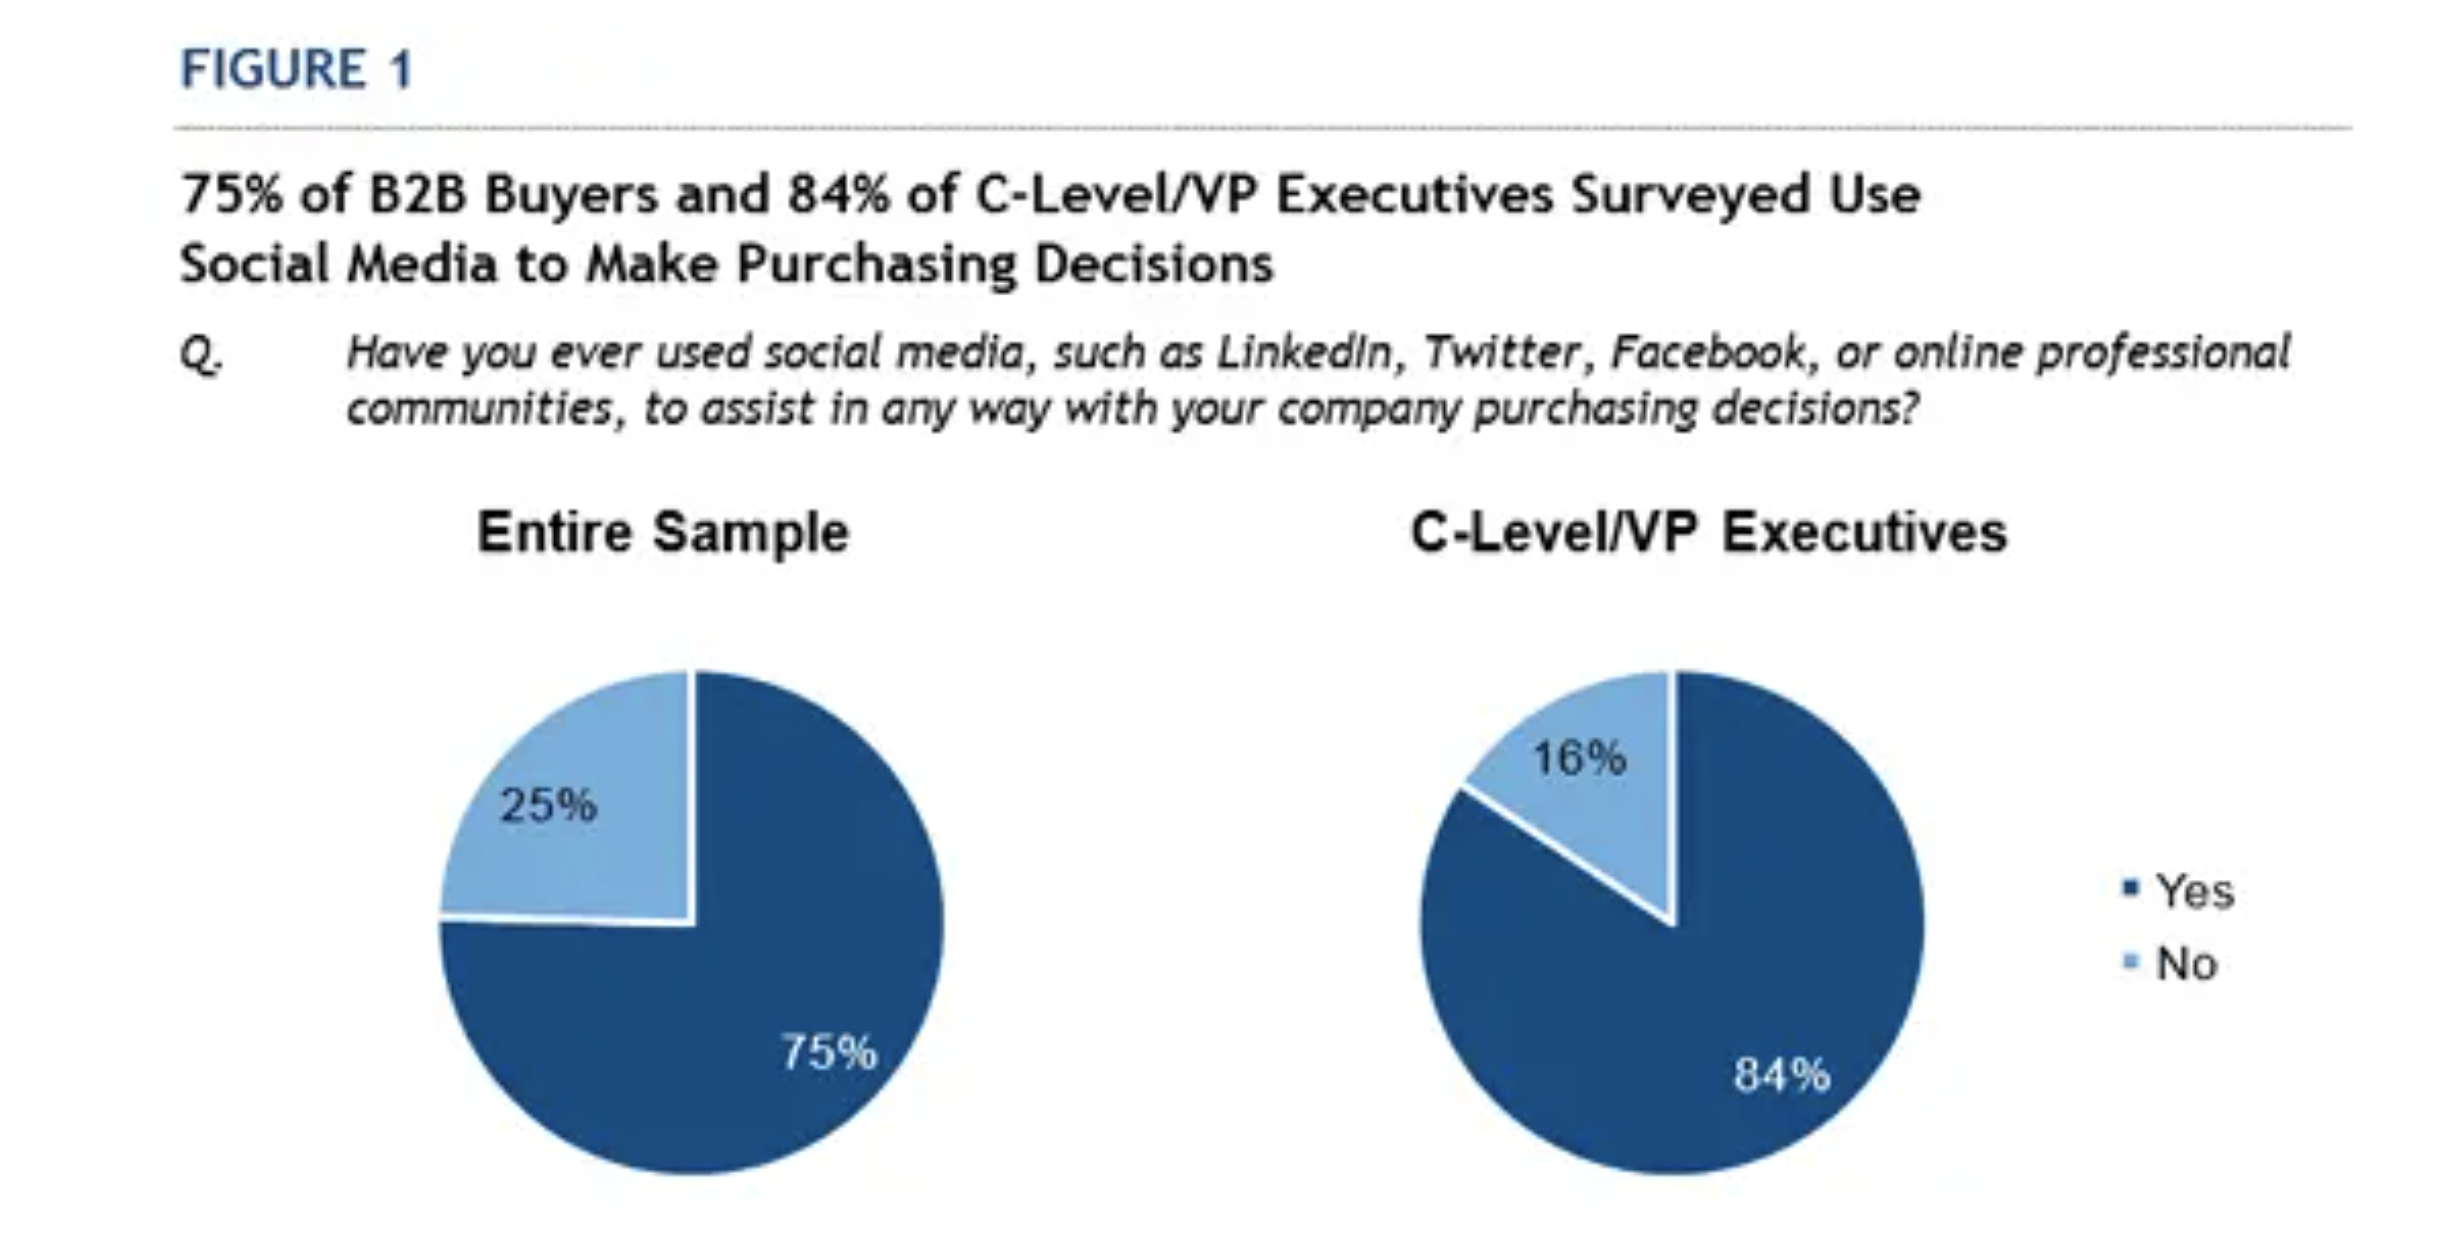 Nearly 75% of buyers and 85% of decision-makers use social media to help make purchasing decisions.